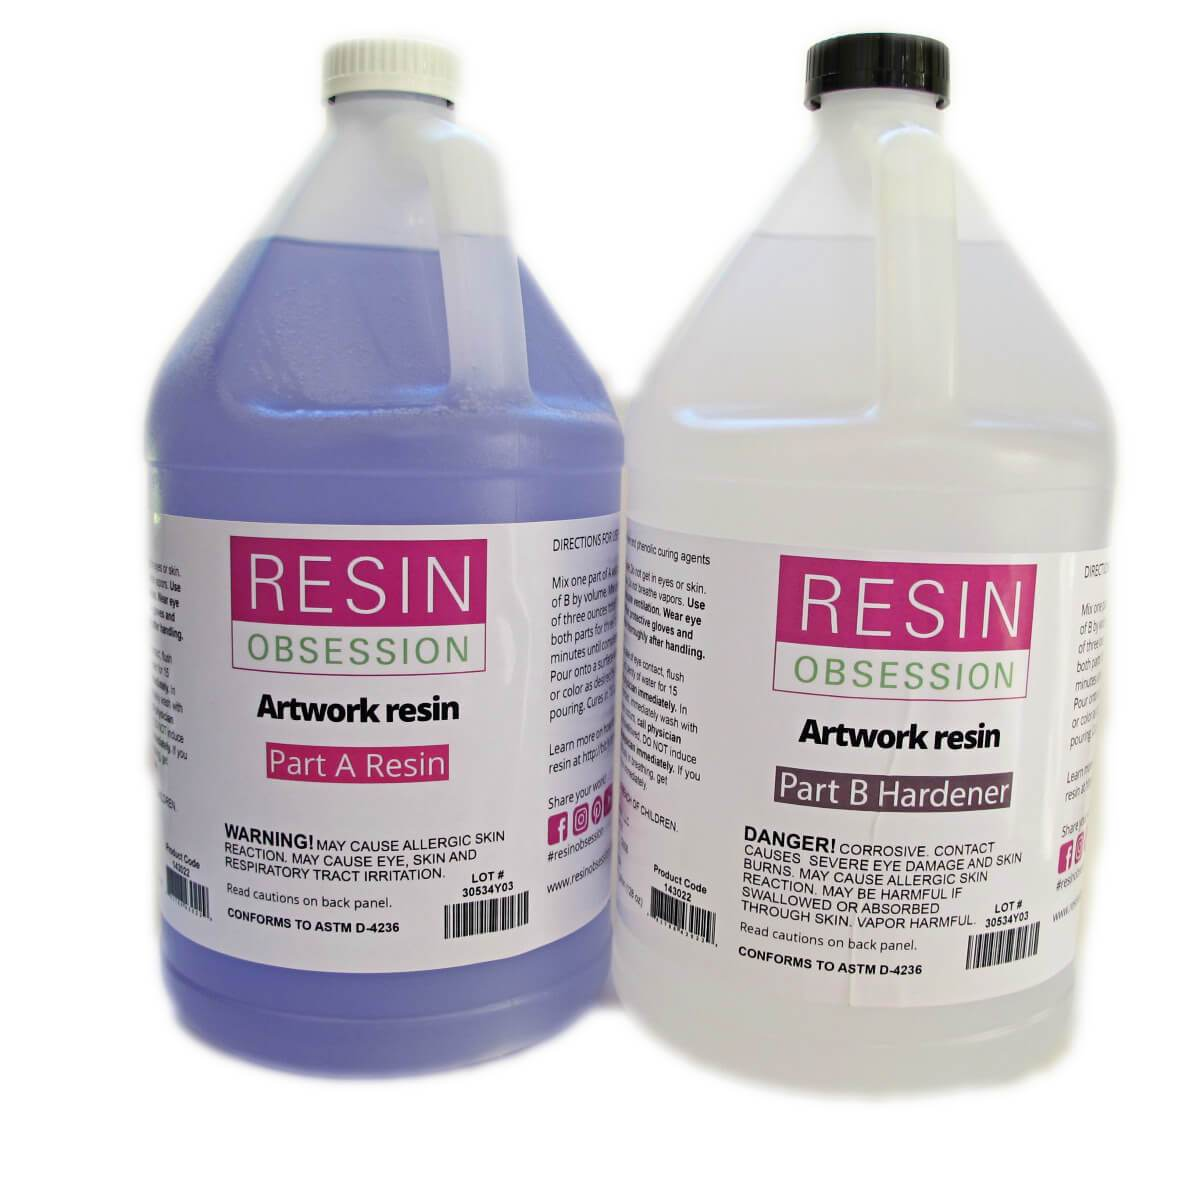 https://www.resinobsession.com/products/resin-obsession-clear-artwork-resin-artwork-coating-resin-2-gallon-kit/